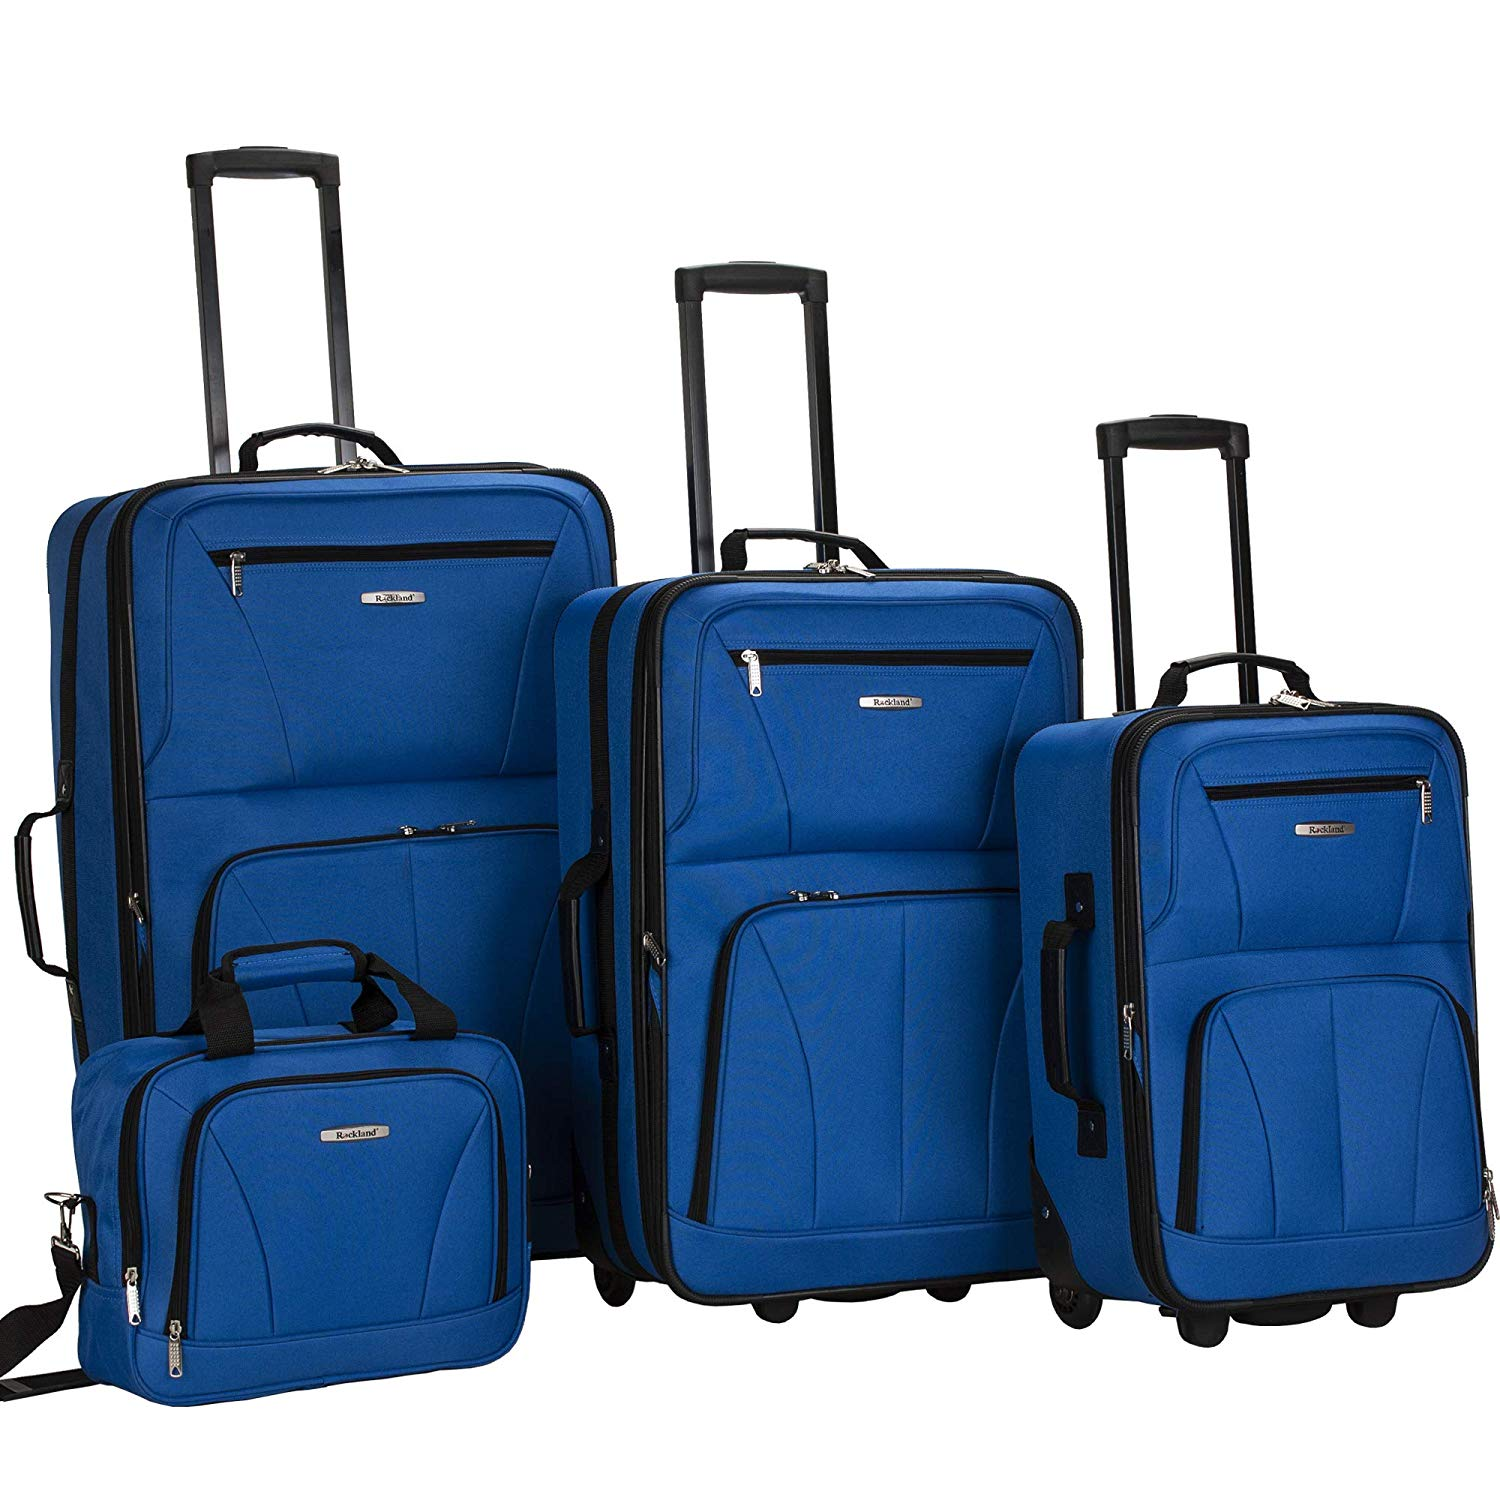 Rockland Luggage 4 Piece Set